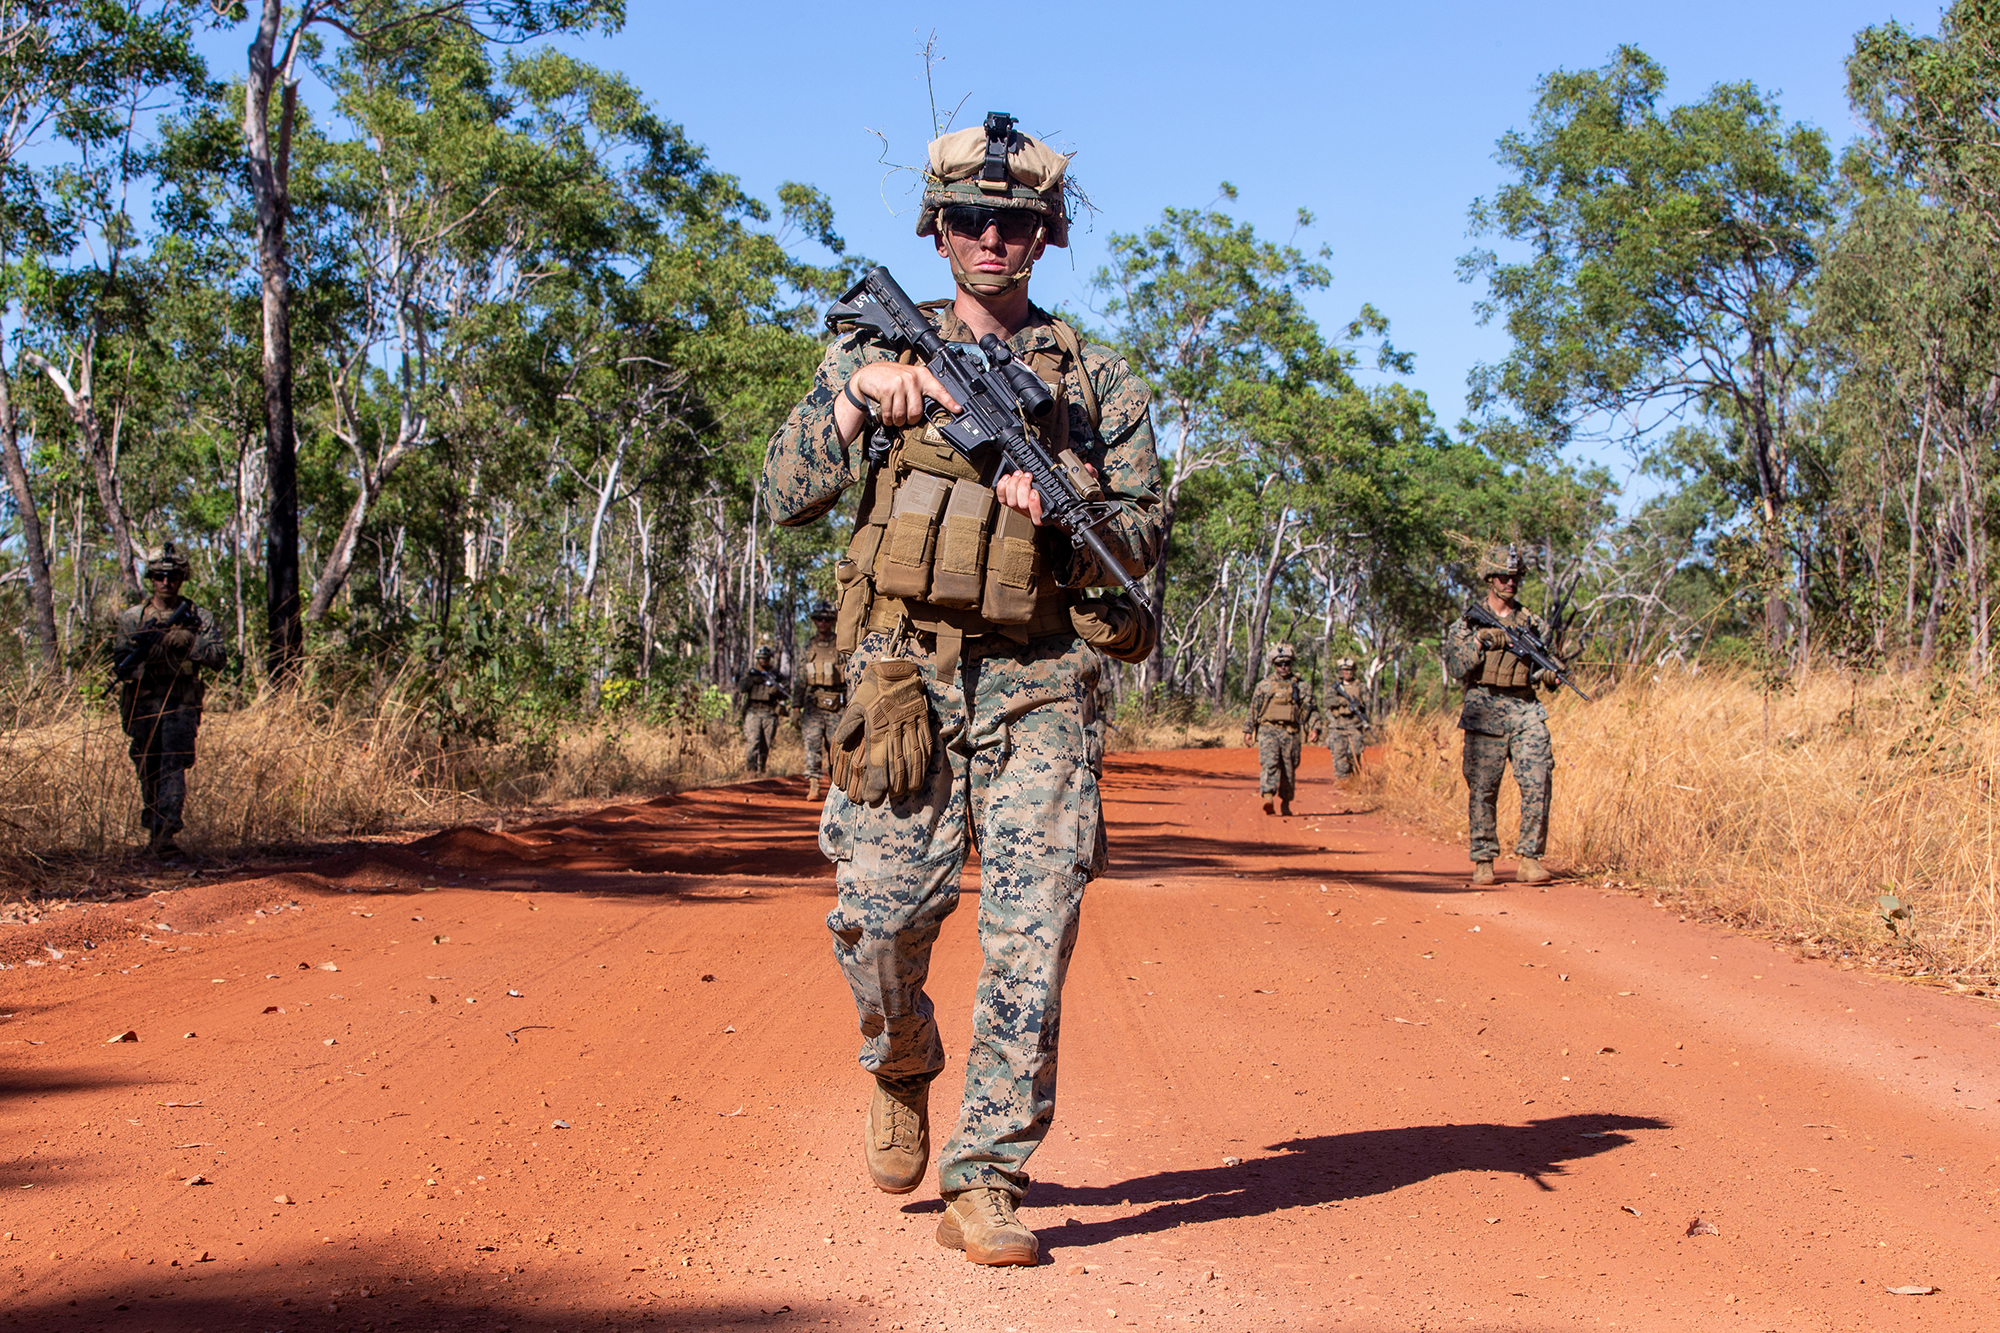 Marine Corps Cpl. Dalton Boswell walks in formation May 28, 2021, during ground threat reaction drills at Mount Bundy Training Area, NT, Australia. (Master Sgt. Sarah Nadeau/Marine Corps)